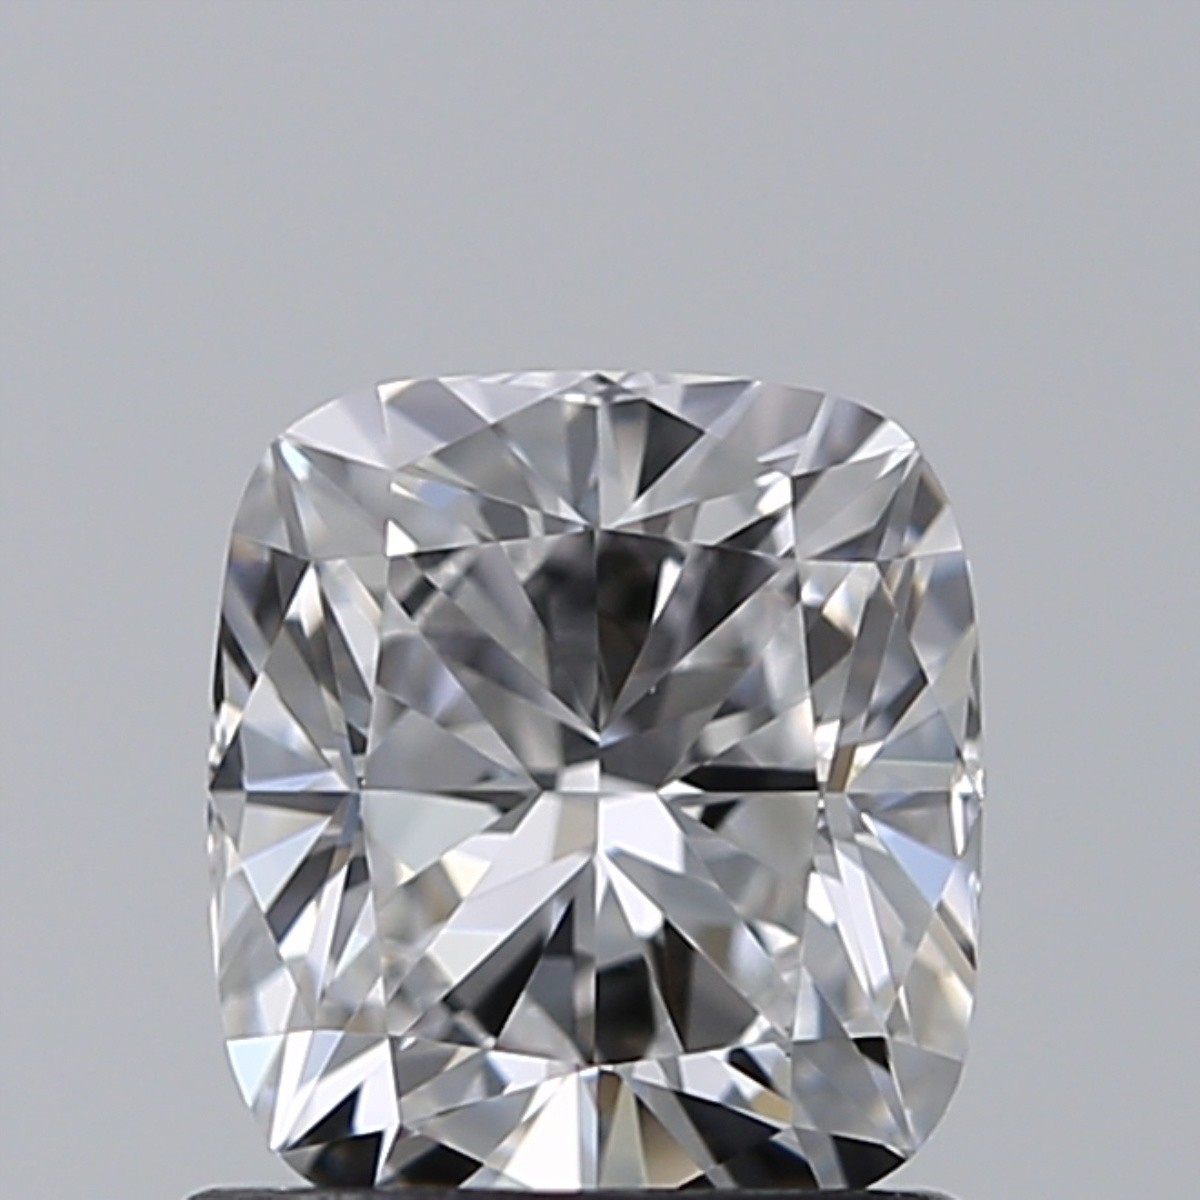 1.01 Carat Cushion Diamond (D/VS1)